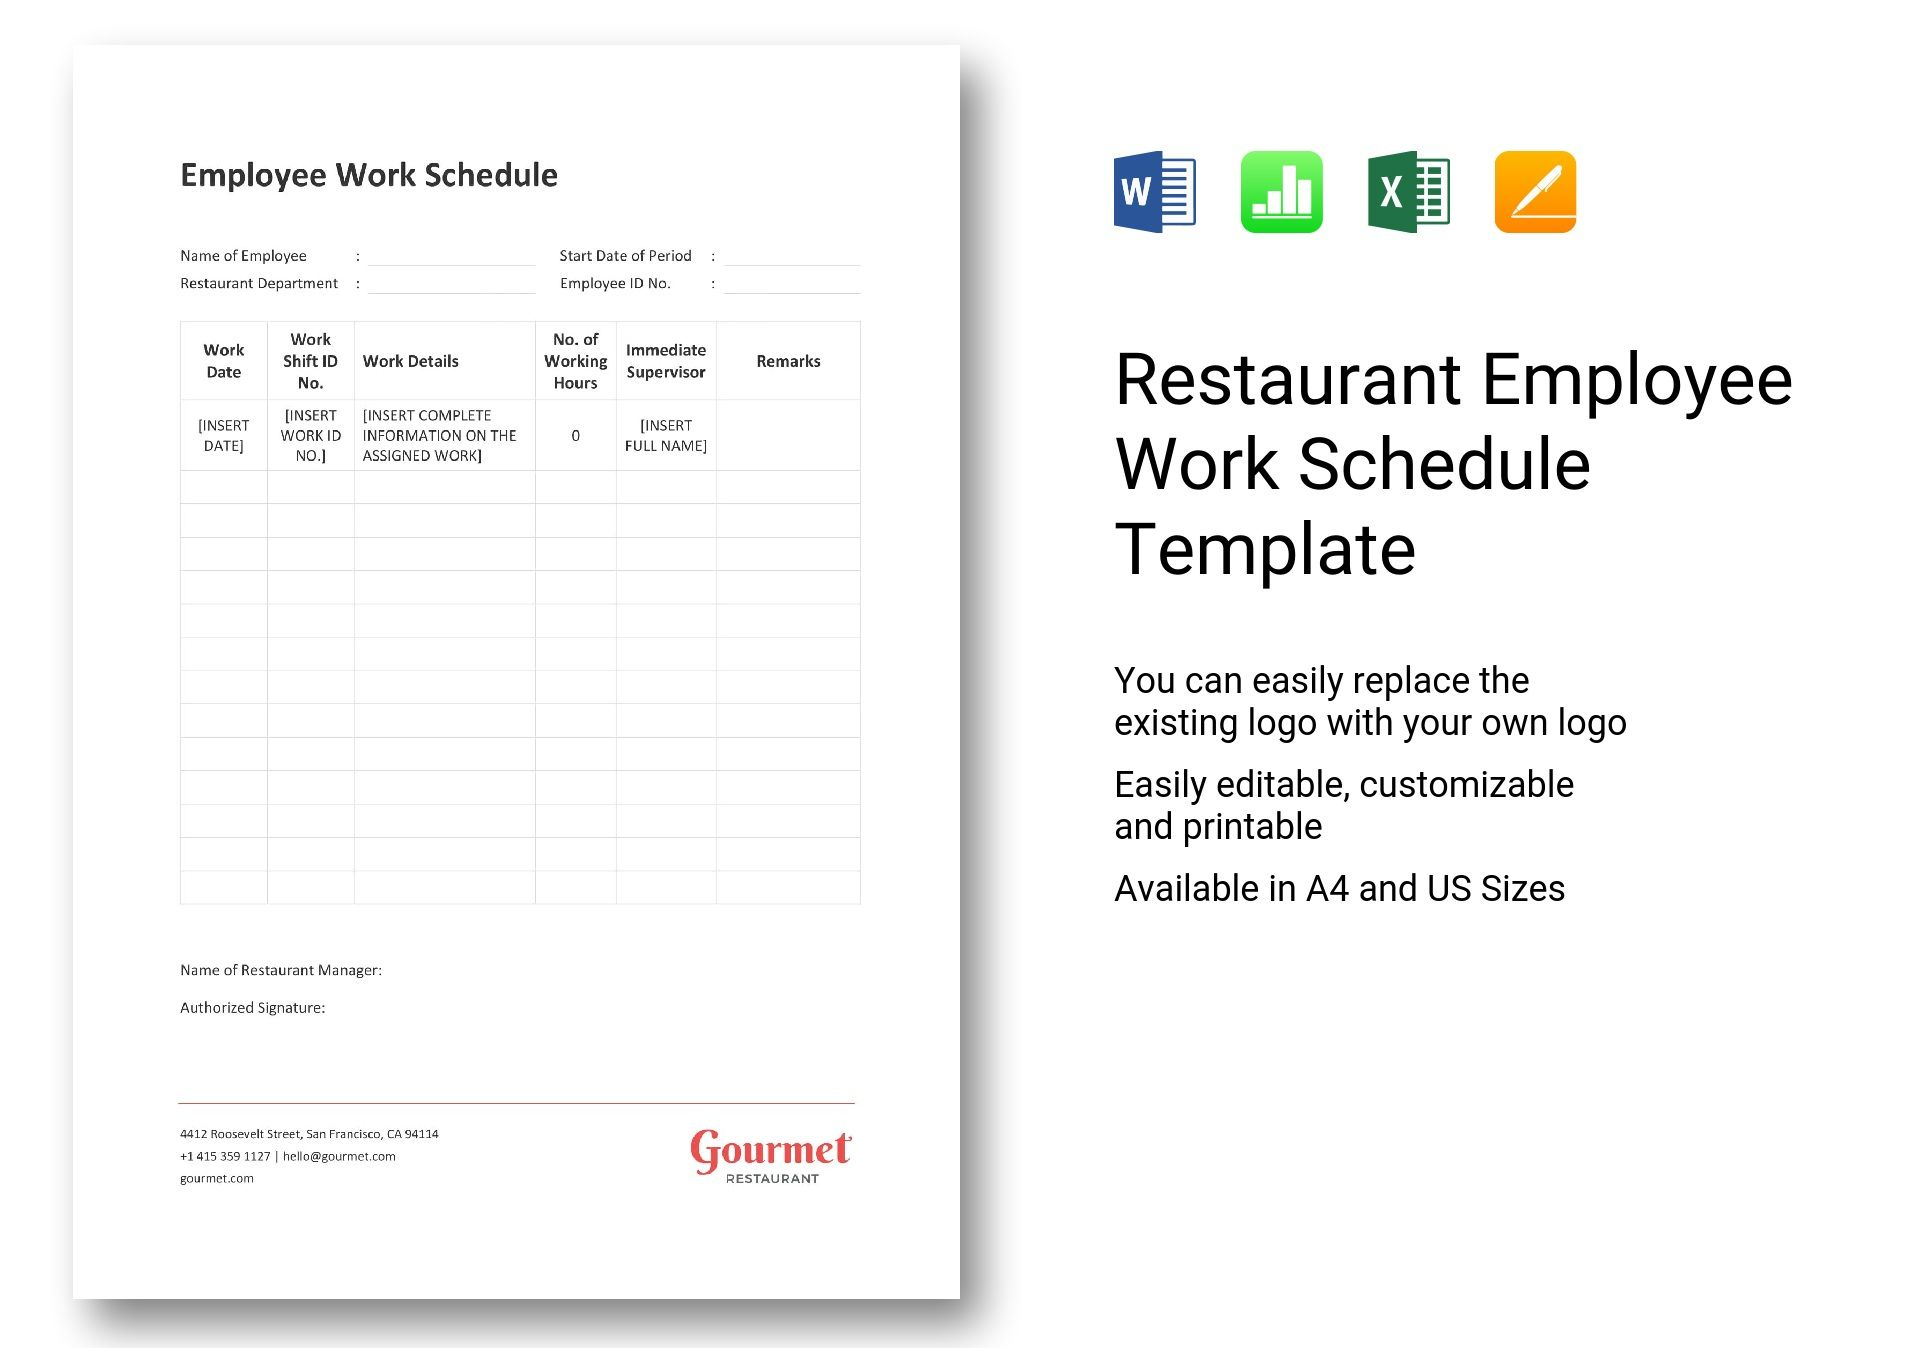 18/04/2019· restaurant work schedule template walkthrough we've even crafted a template which you can edit and customize to match the number and type of employees you are scheduling and the kind of shifts you've chosen to cover your restaurant operation. Restaurant Employee Work Schedule Template In Word Excel Apple Pages Numbers